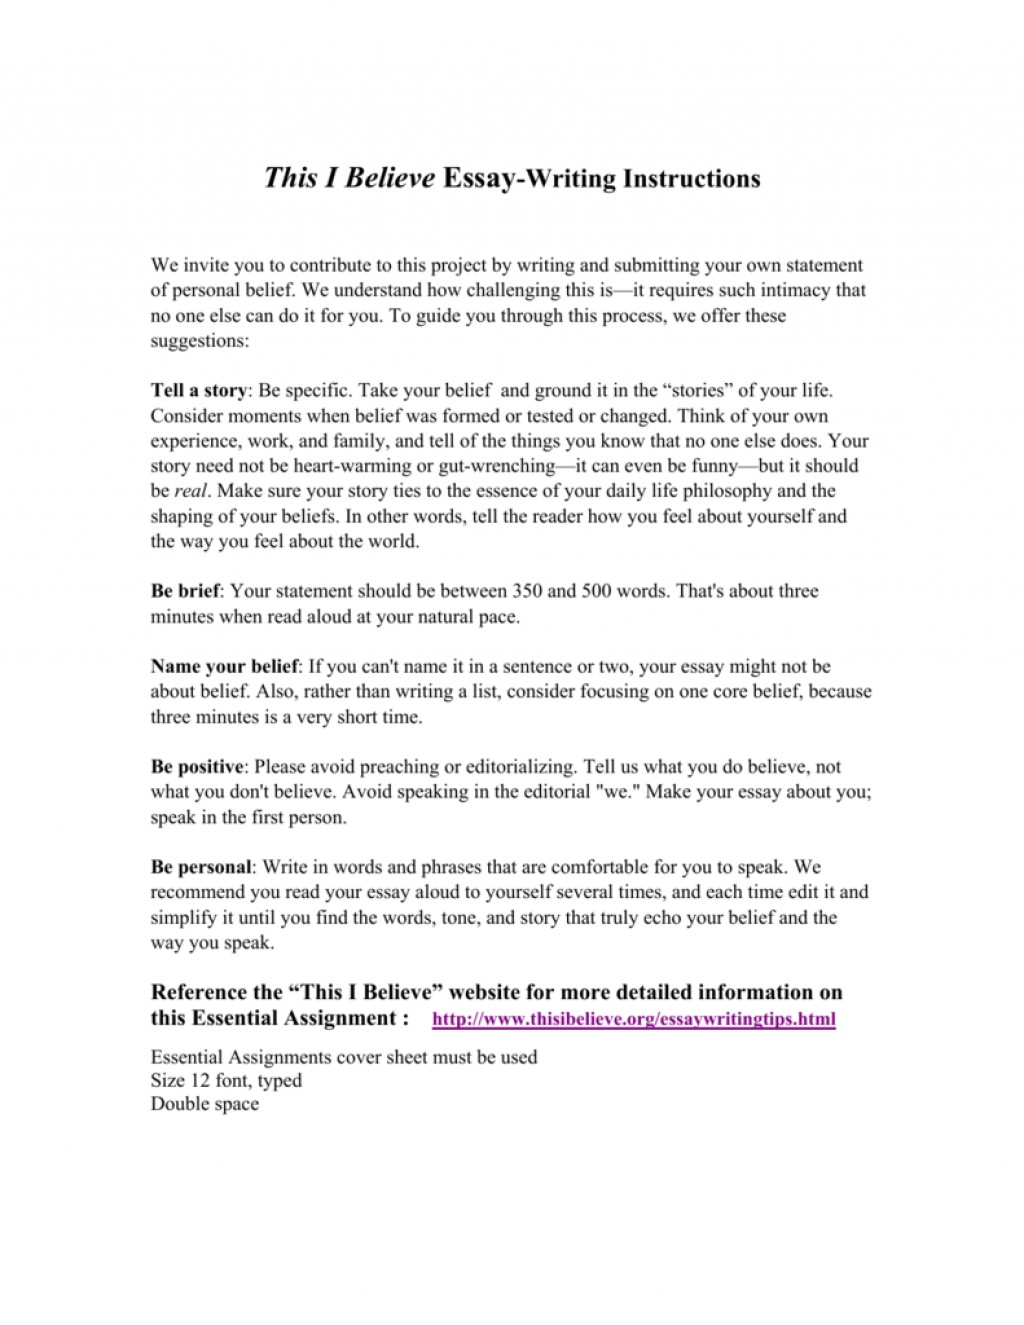 017 This I Believe Essays 008807219 1 Stupendous Essay Examples Personal College Large